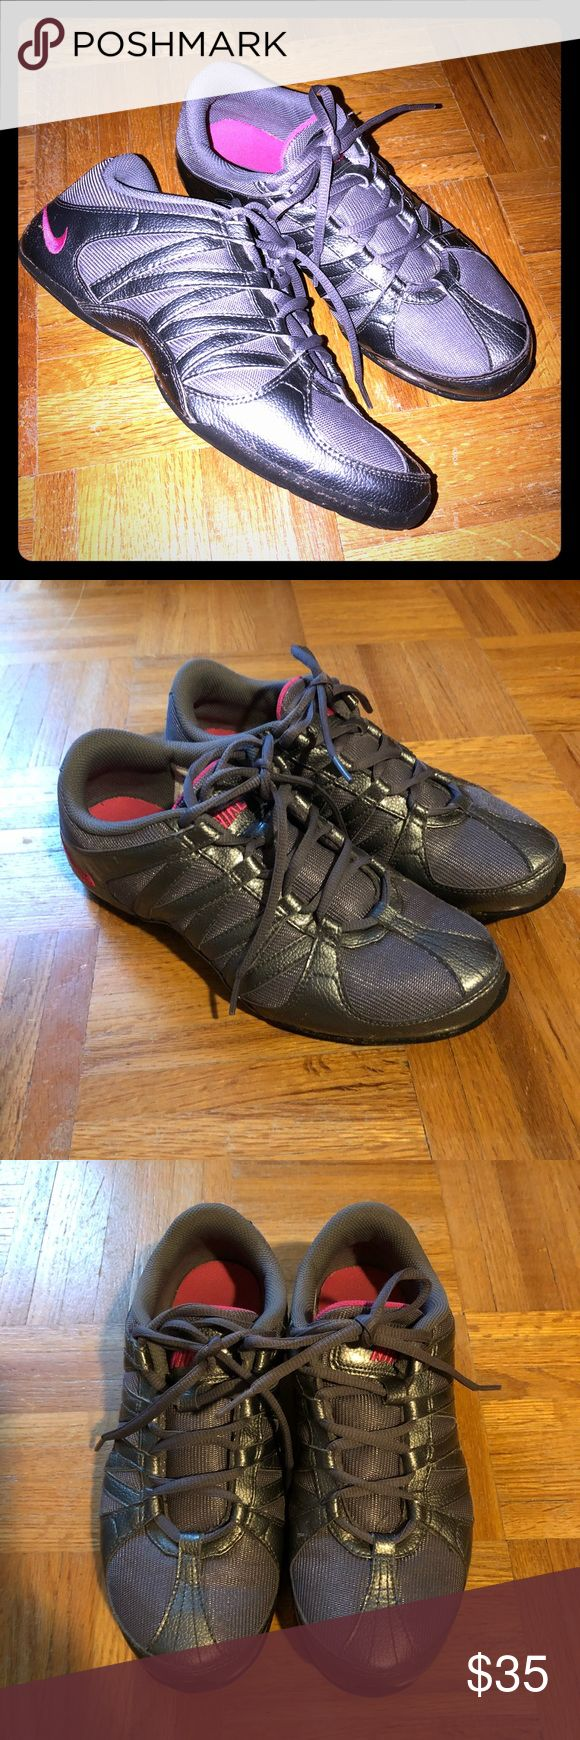 Nike dance shoes 8.5 In great condition. Nike Shoes